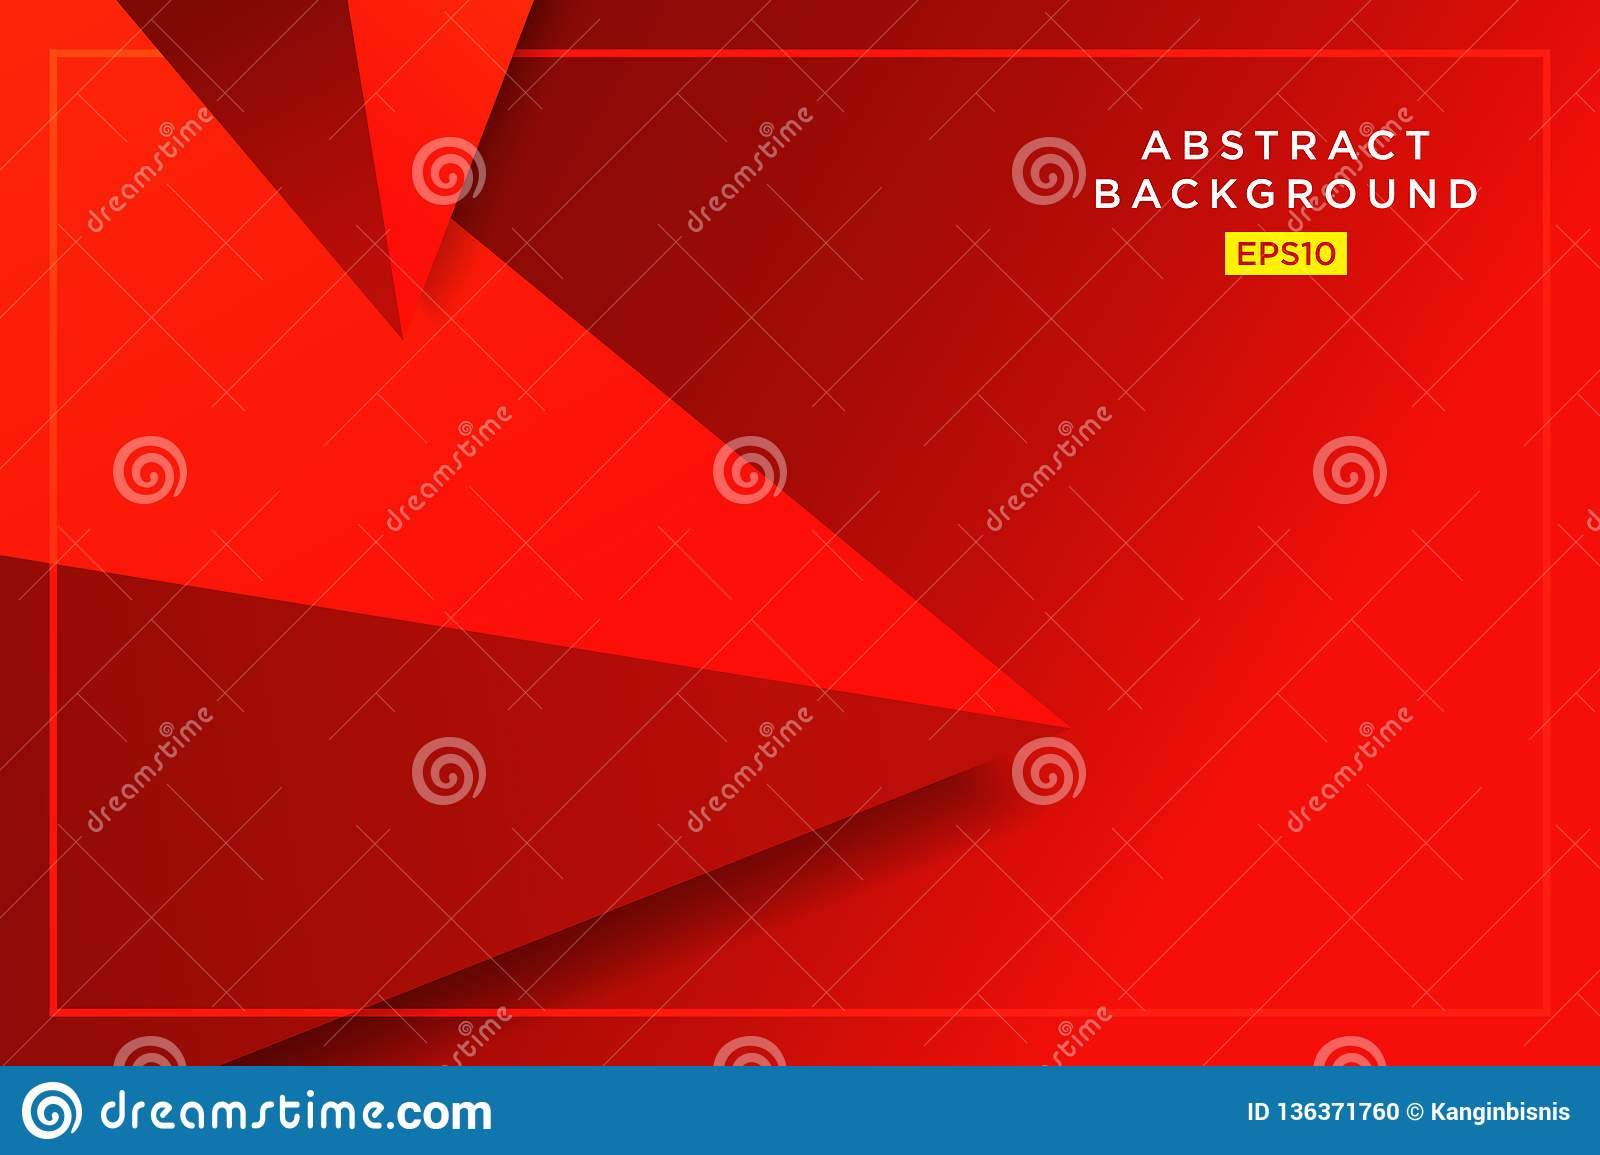 Abstract Red Hipster Futuristic Graphic Background With